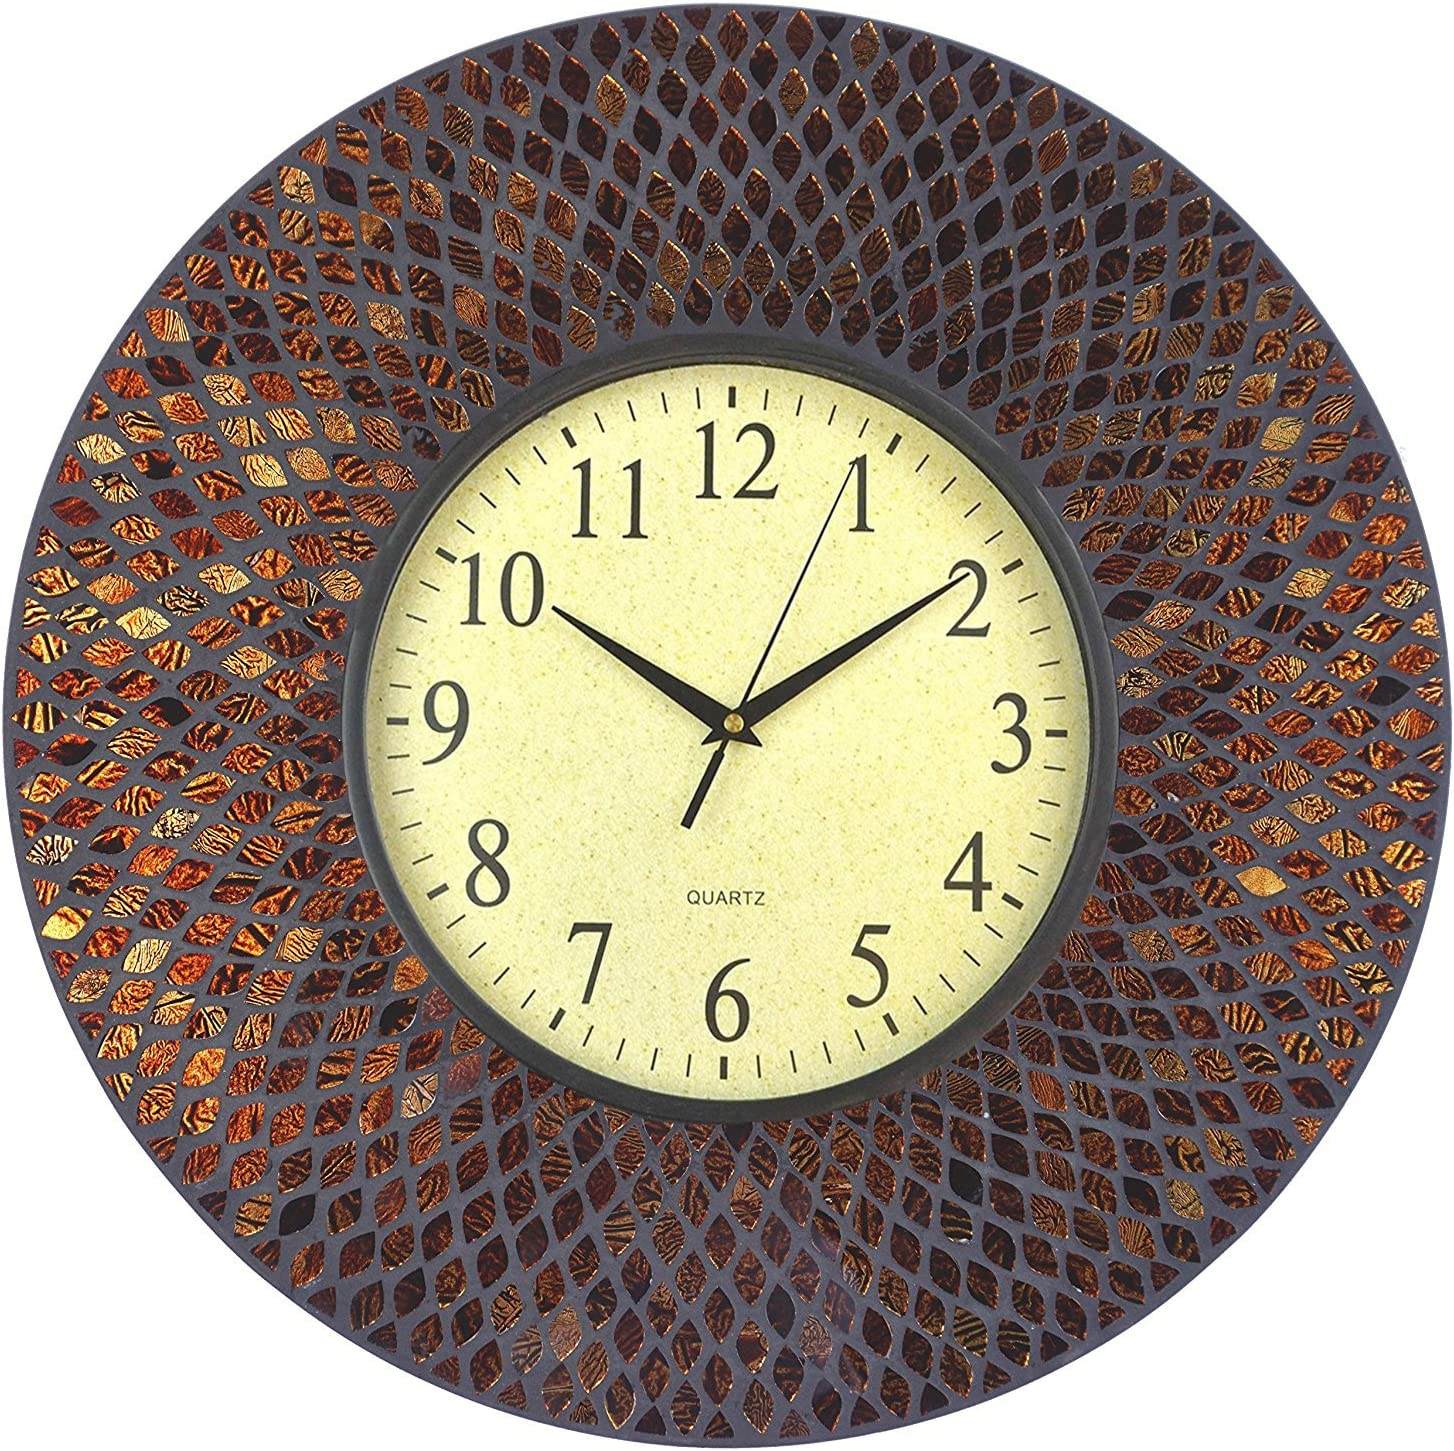 """Lulu Decor, 19"""" Amber Comb Mosaic Wall Clock with Black Cement, Arabic Number Glass Dial 9.5"""" for Living Room & Office Space (LP73)"""